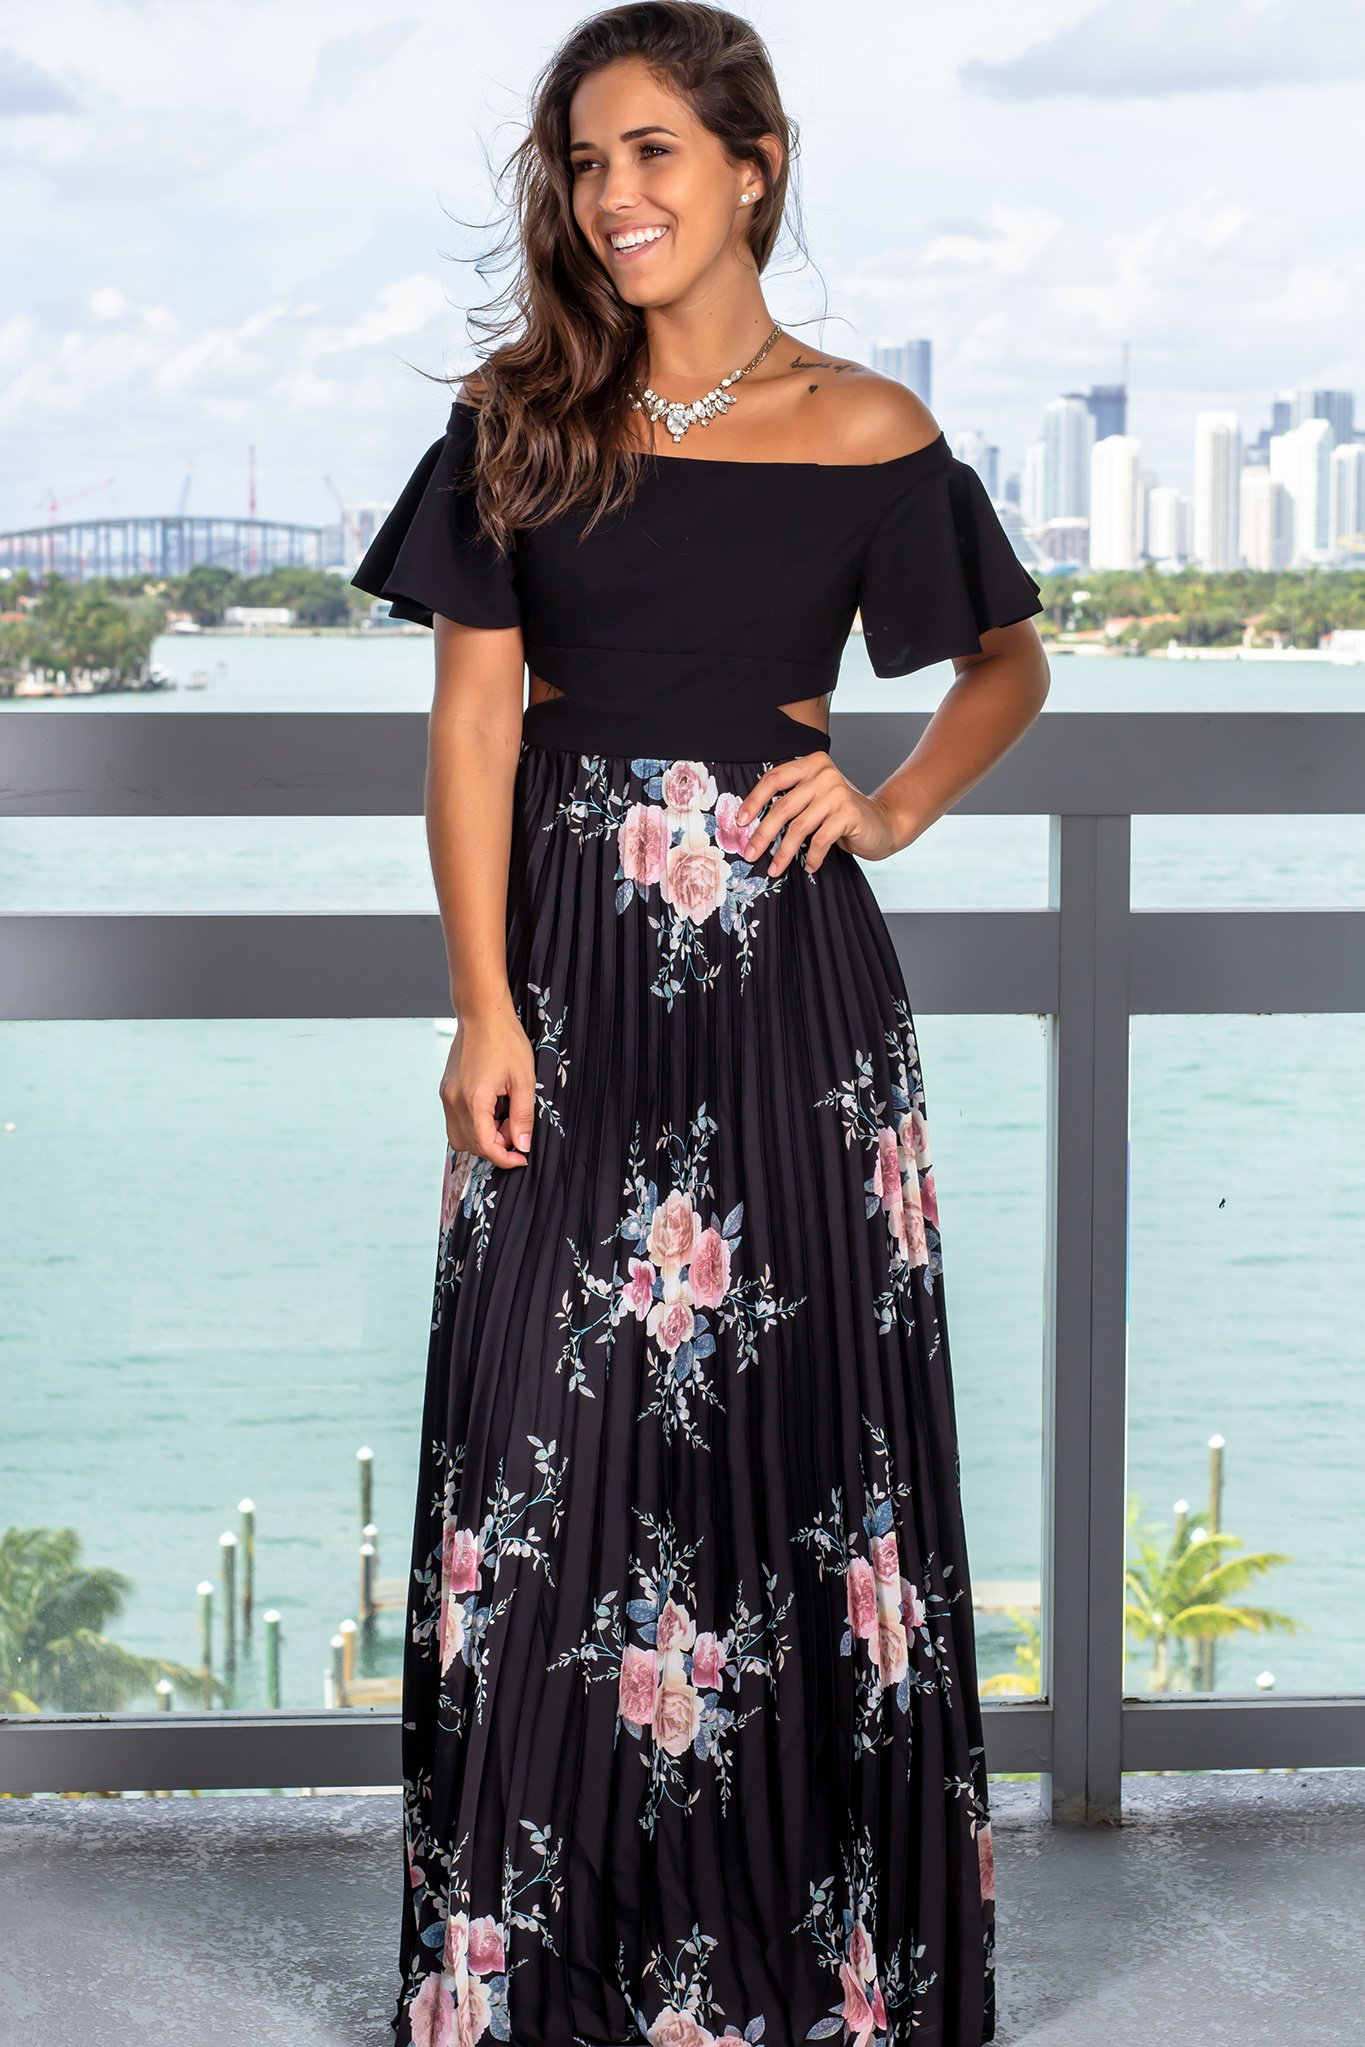 Black floral pleated maxi dress with ruffle sleeves with